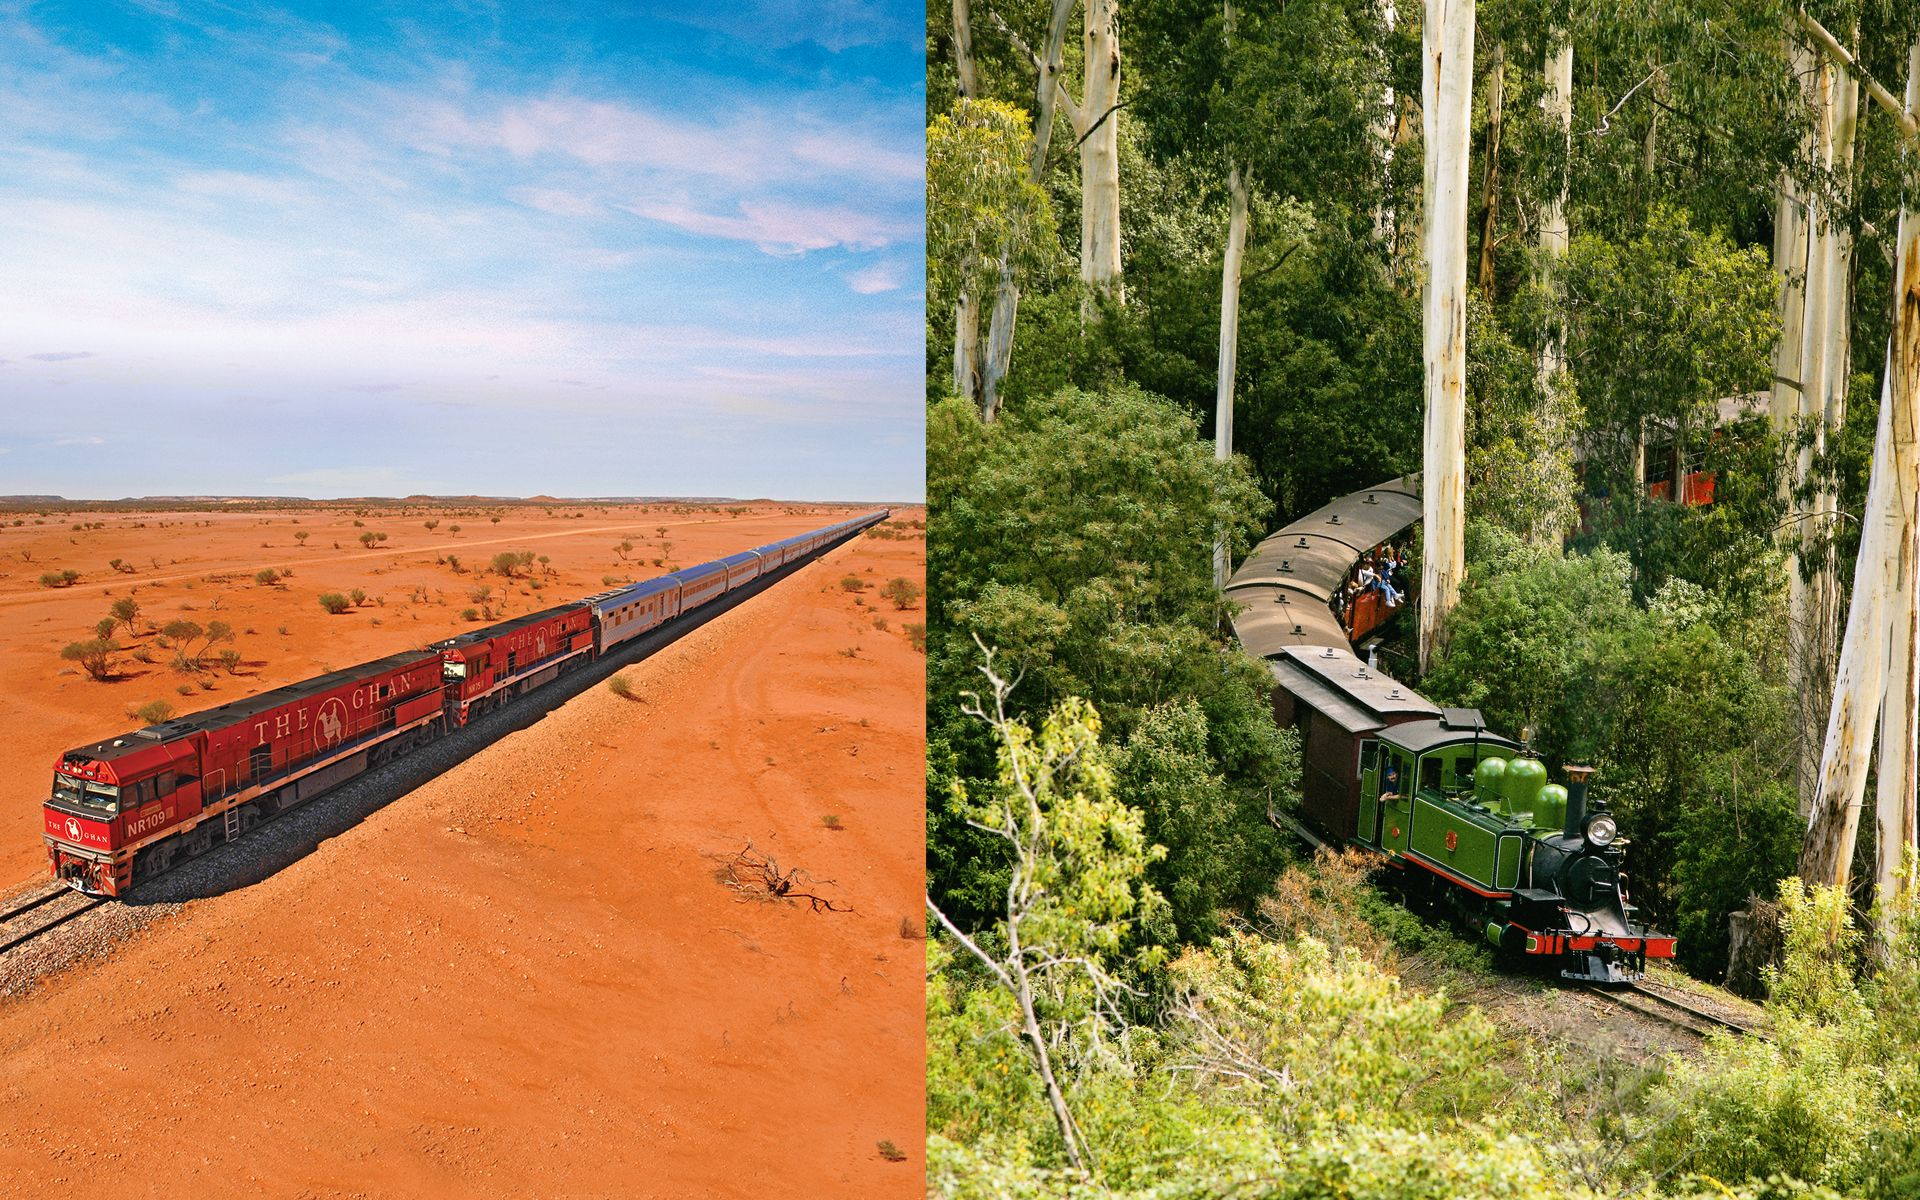 Romance In Australia? Travel Writer David Bowden Reveals 7 Reasons Alternative Train Trips Are The Way To Go